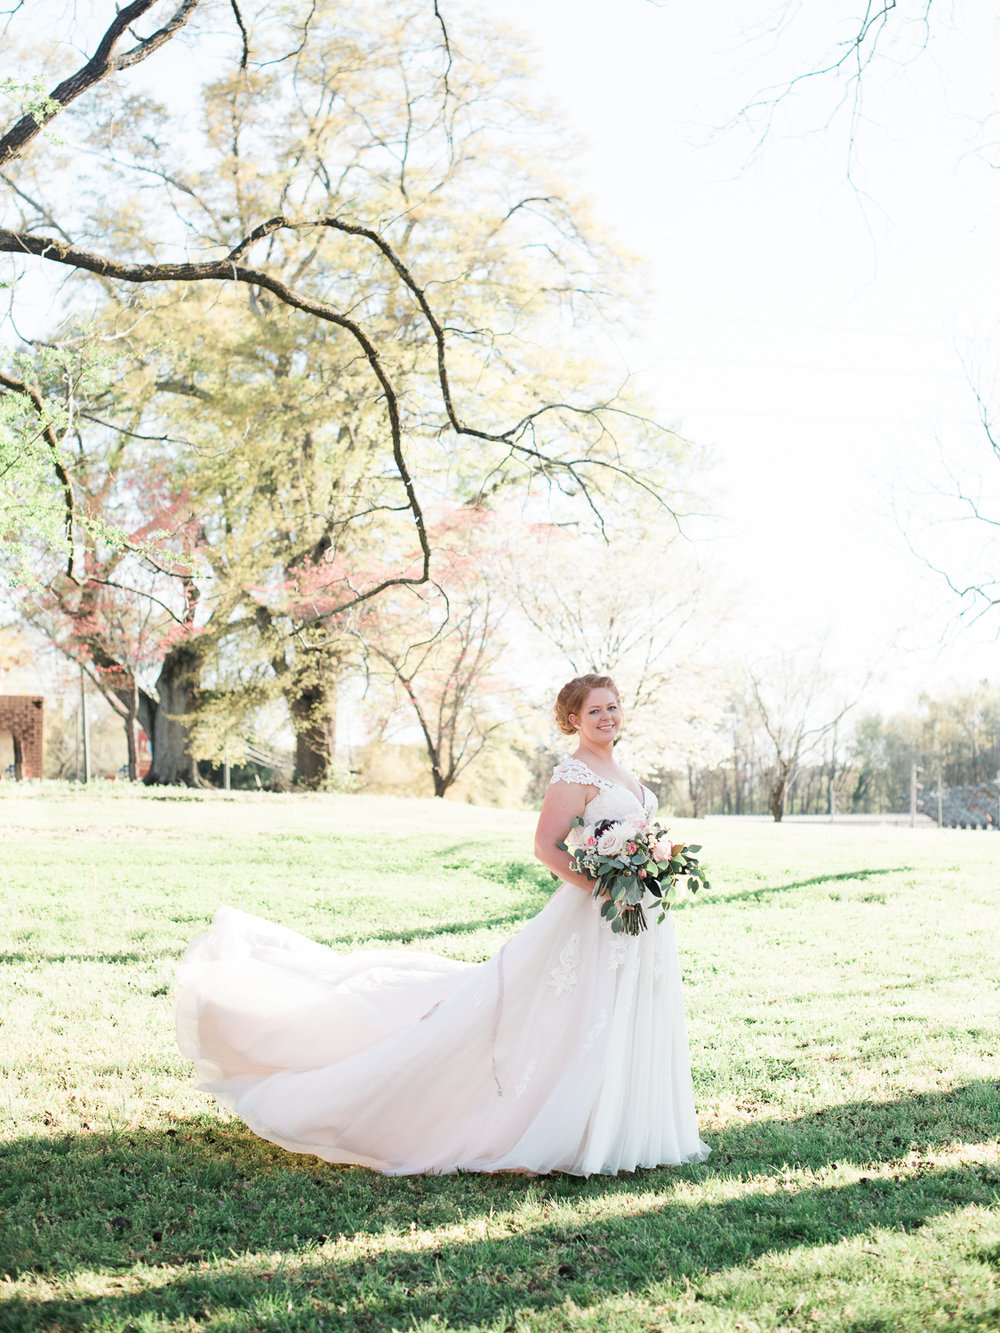 christinadavisphotography+realwedding+aprilfirst89.jpg